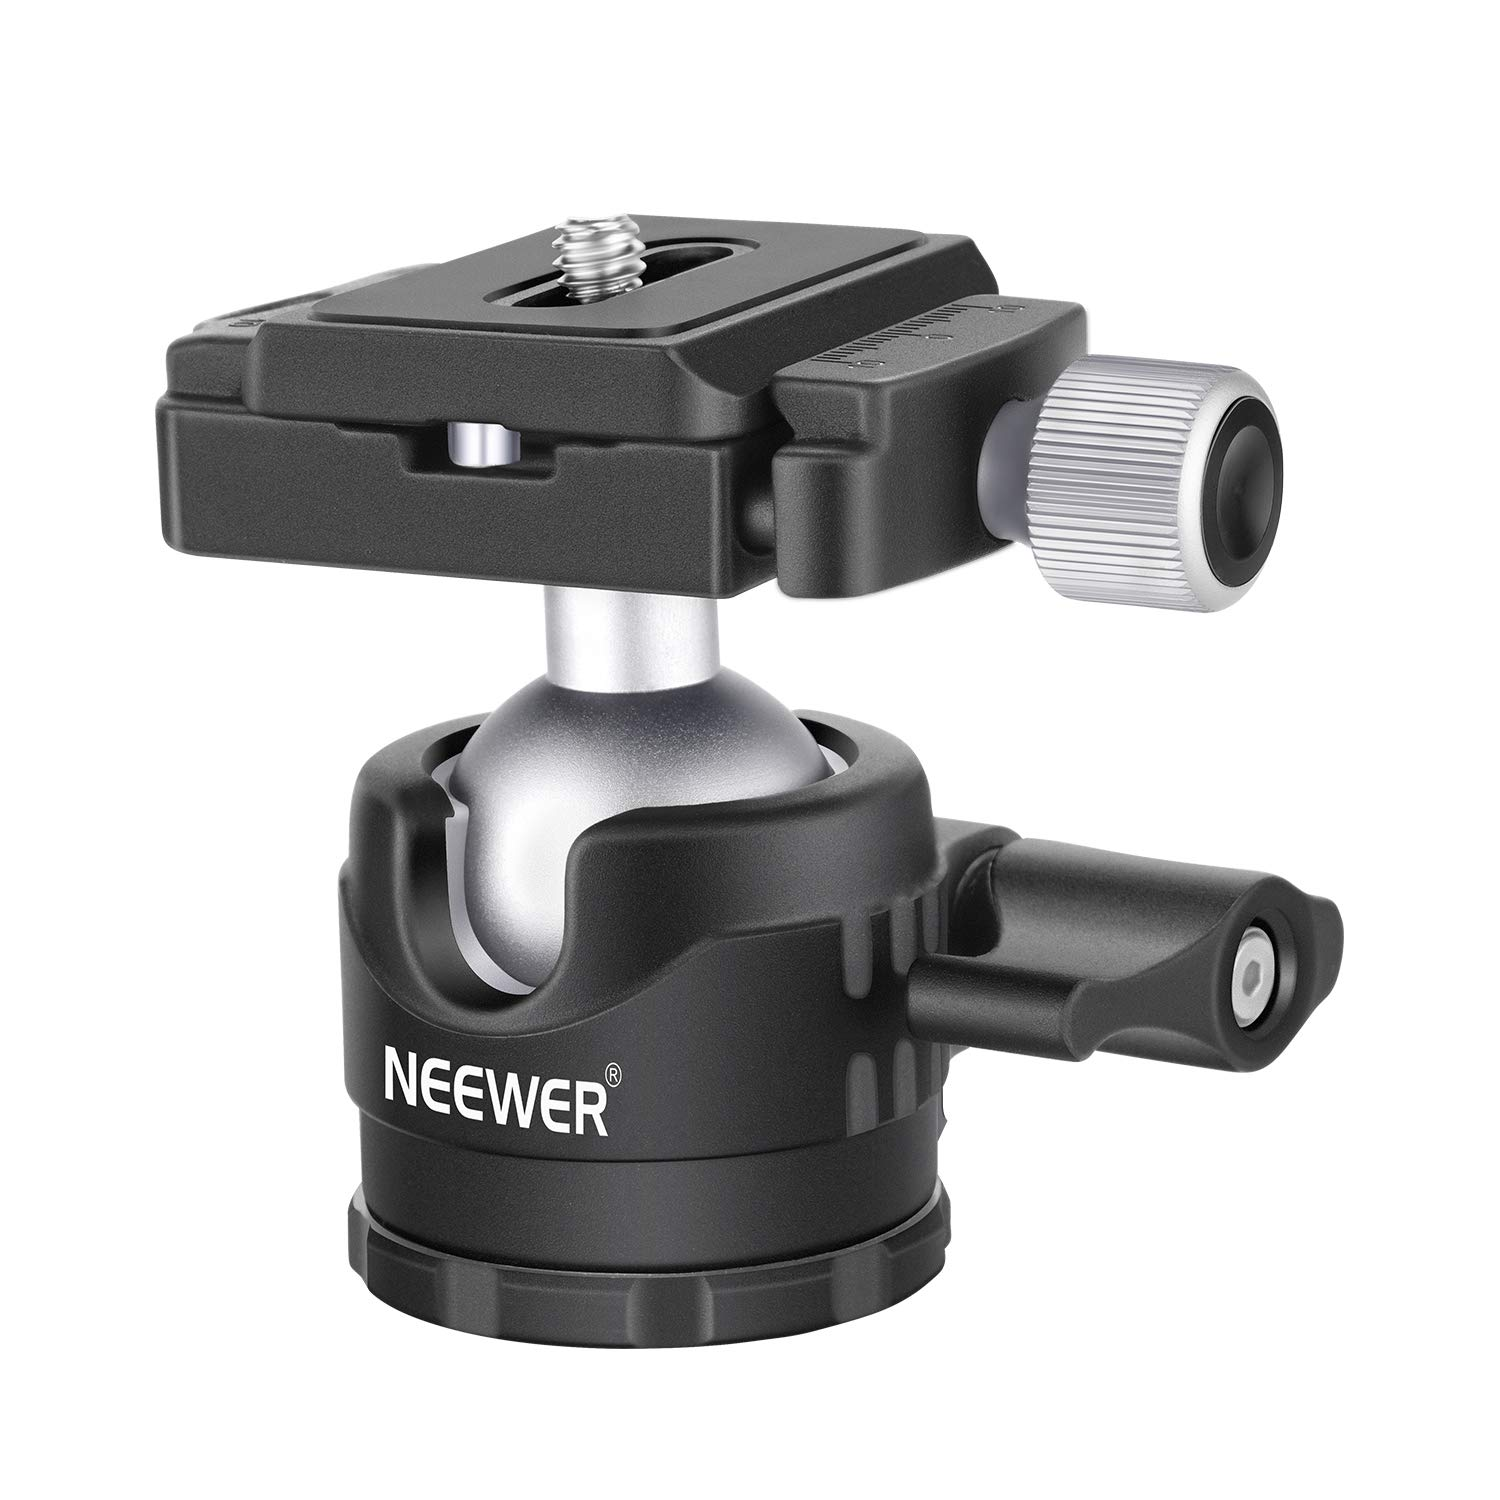 Neewer Low-Profile Ball Head 360 Degree Rotatable Tripod Head for DSLR Cameras Tripods Monopods by Neewer